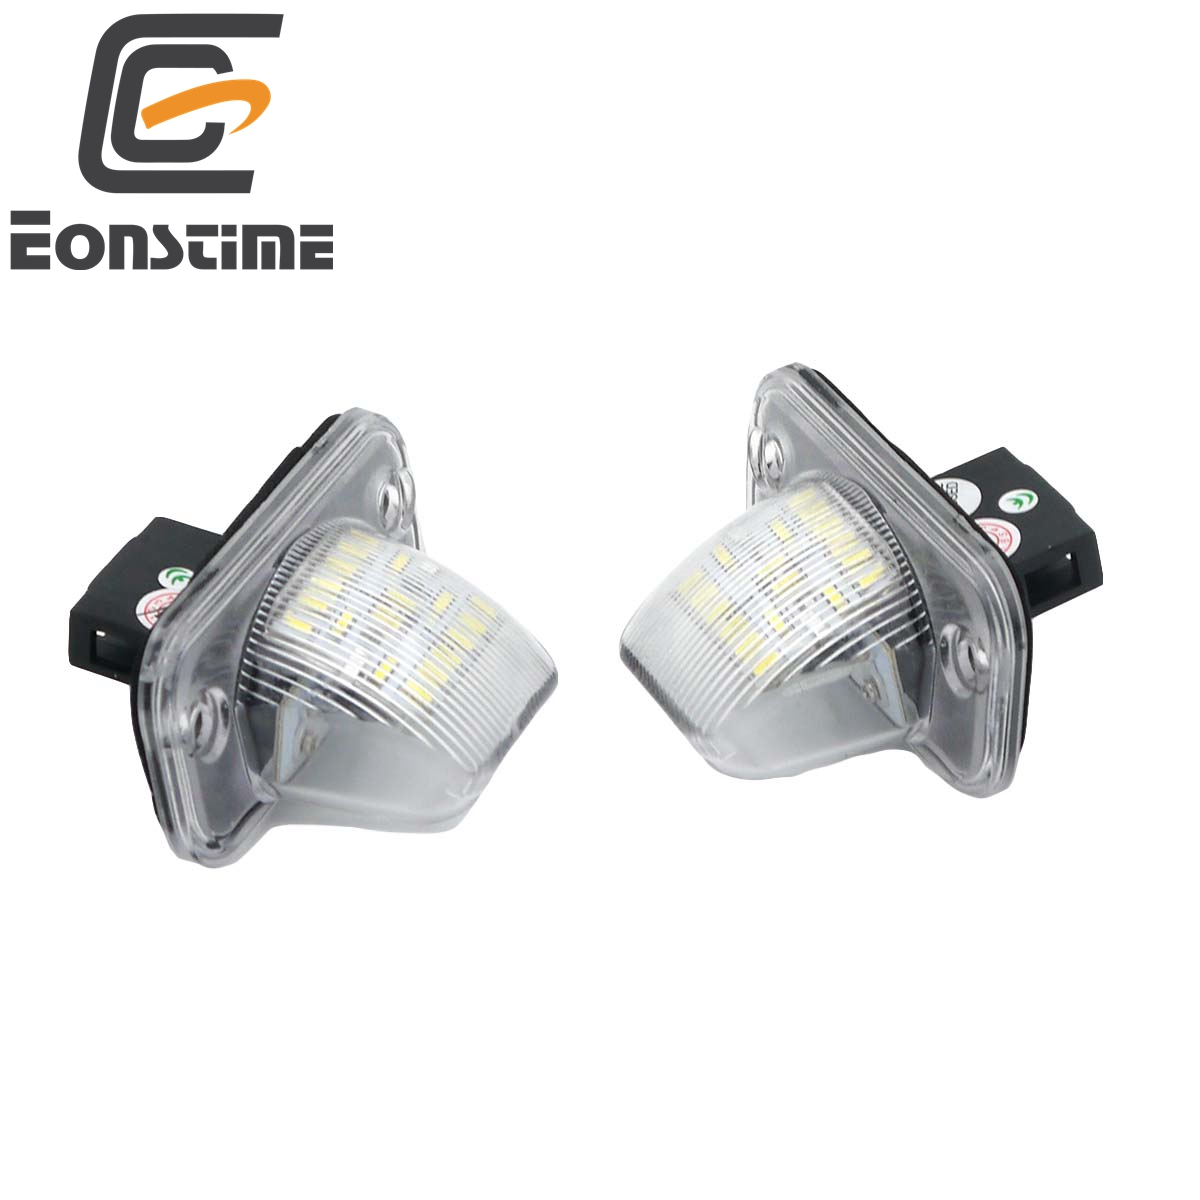 Eonstime 2Pcs 18SMD <font><b>LED</b></font> License Plate Number <font><b>Light</b></font> Lamp For <font><b>VW</b></font> Transporter T4/Caravelle MK4/Multivan <font><b>Passat</b></font> <font><b>B5</b></font> B6 Combi Eurova image